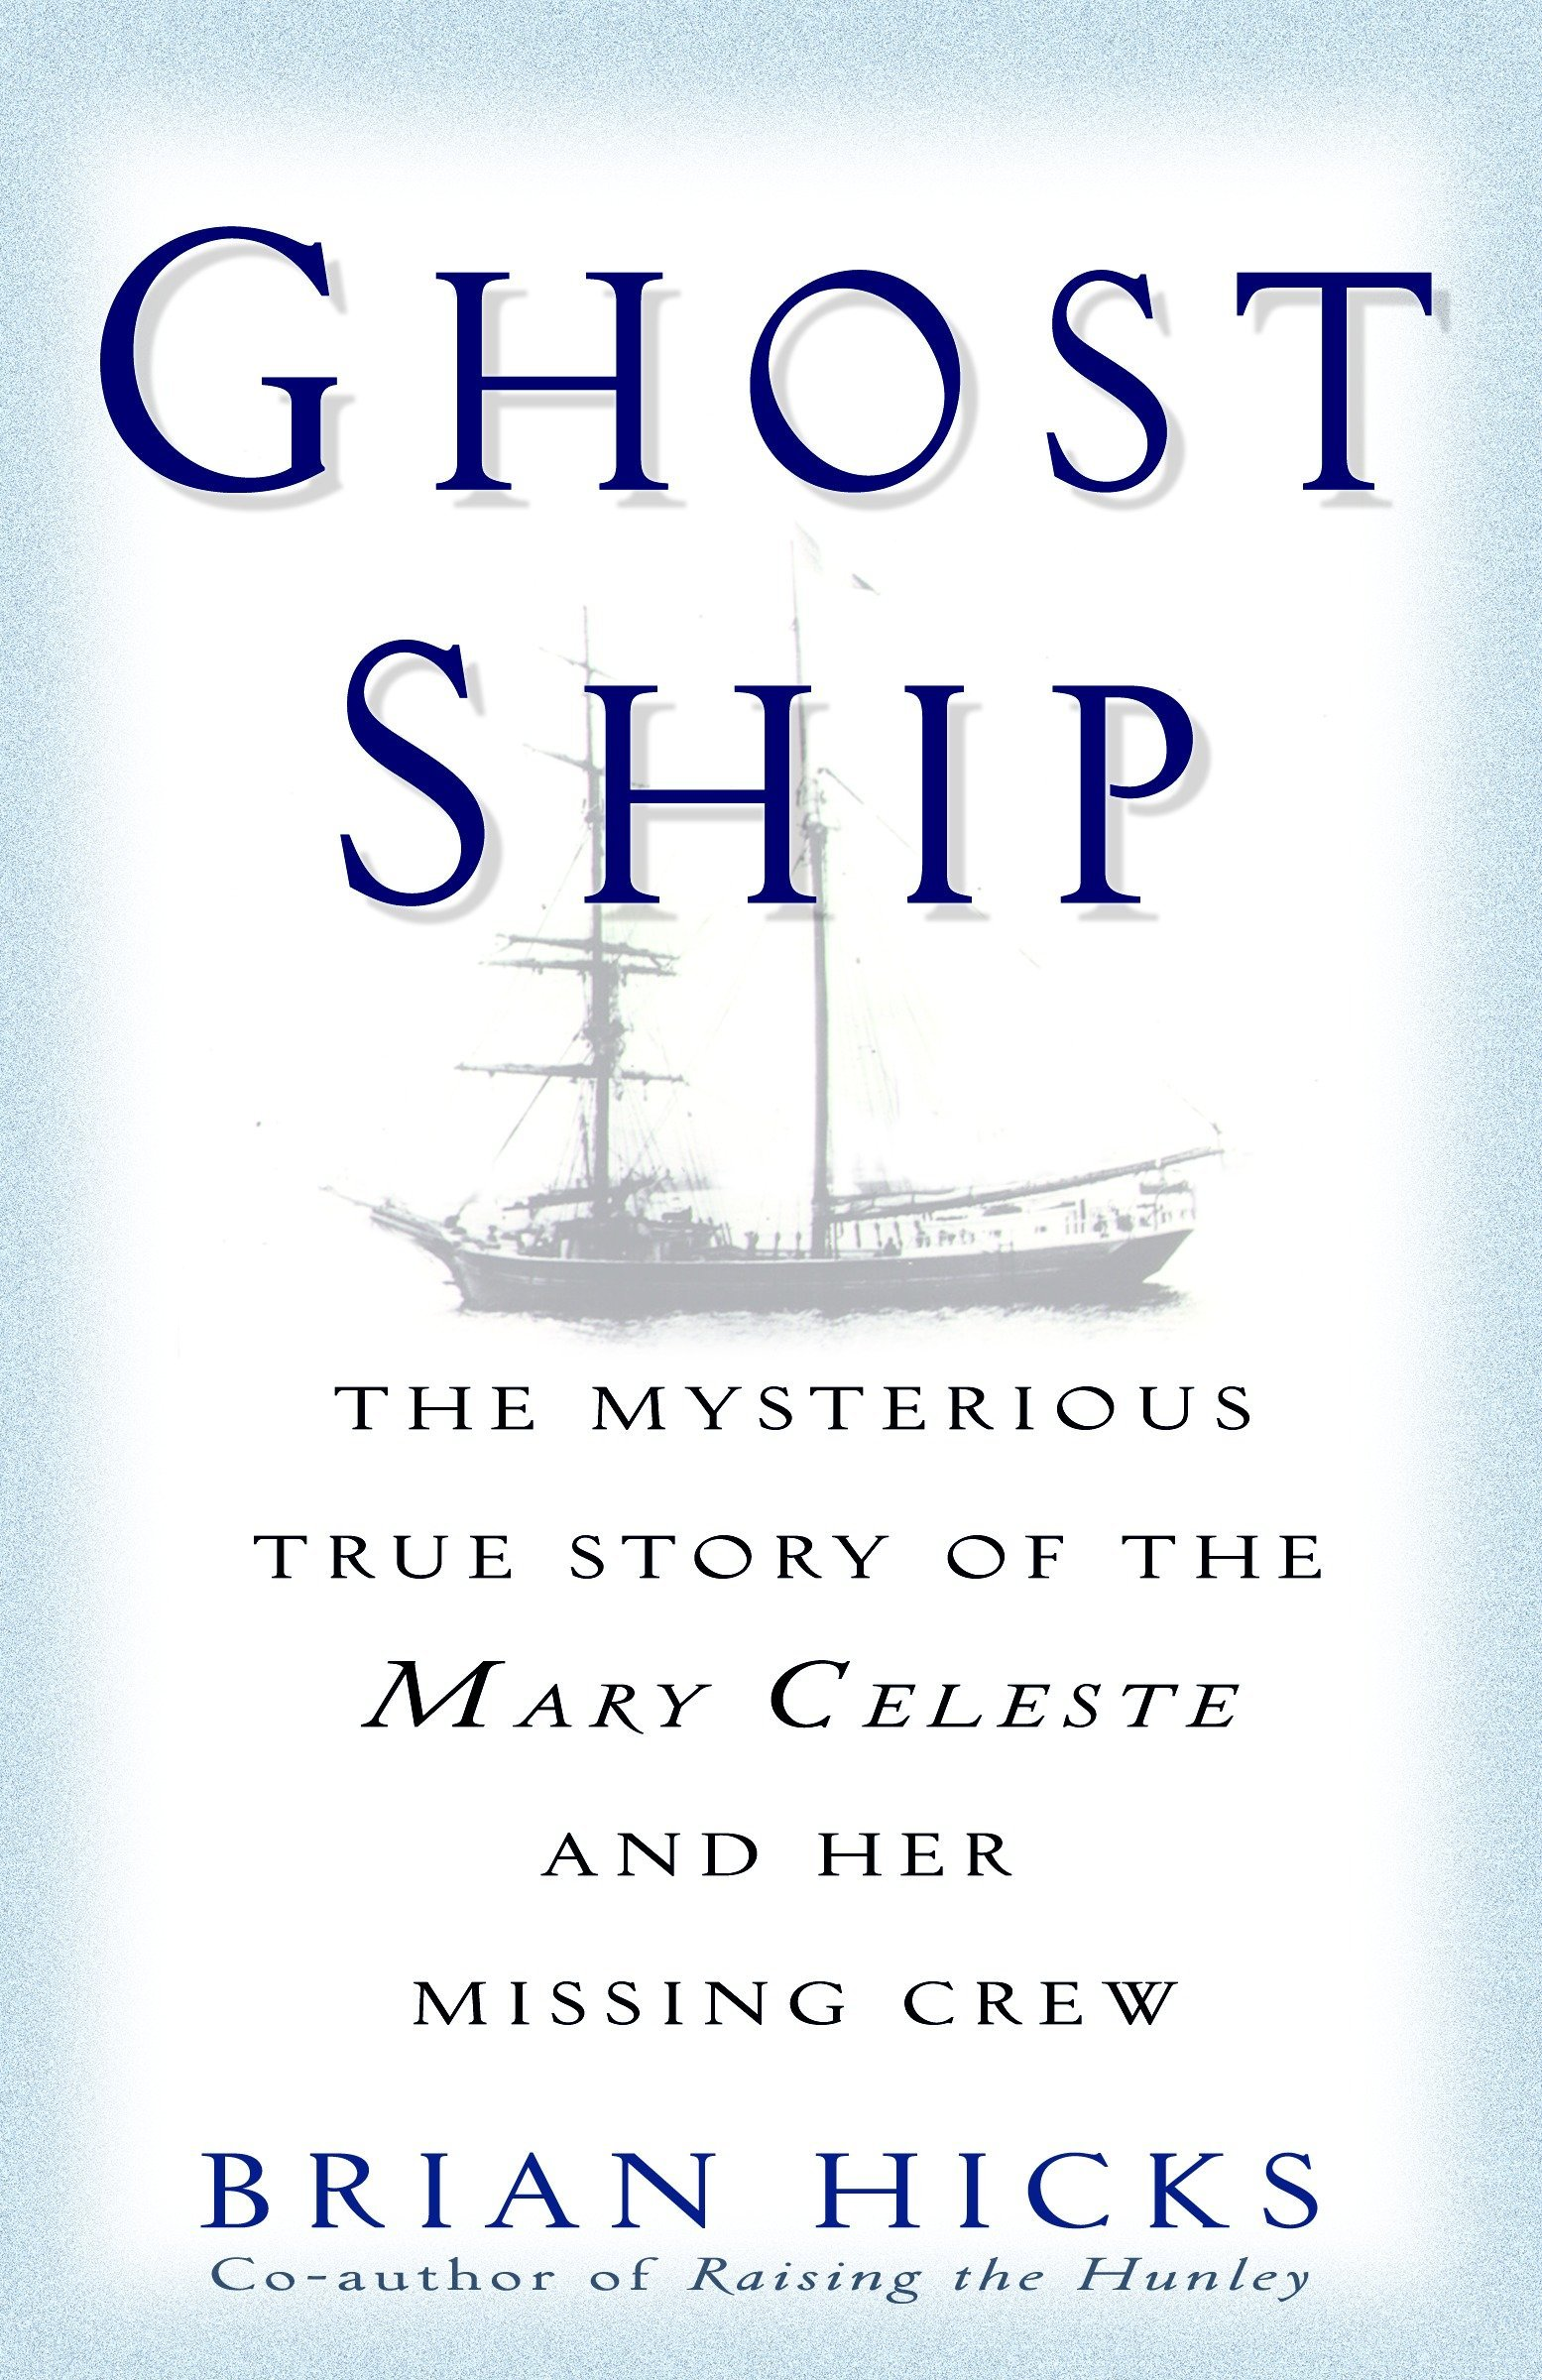 Ghost Ship: The Mysterious True Story of the Mary Celeste and Her Missing Crew pdf